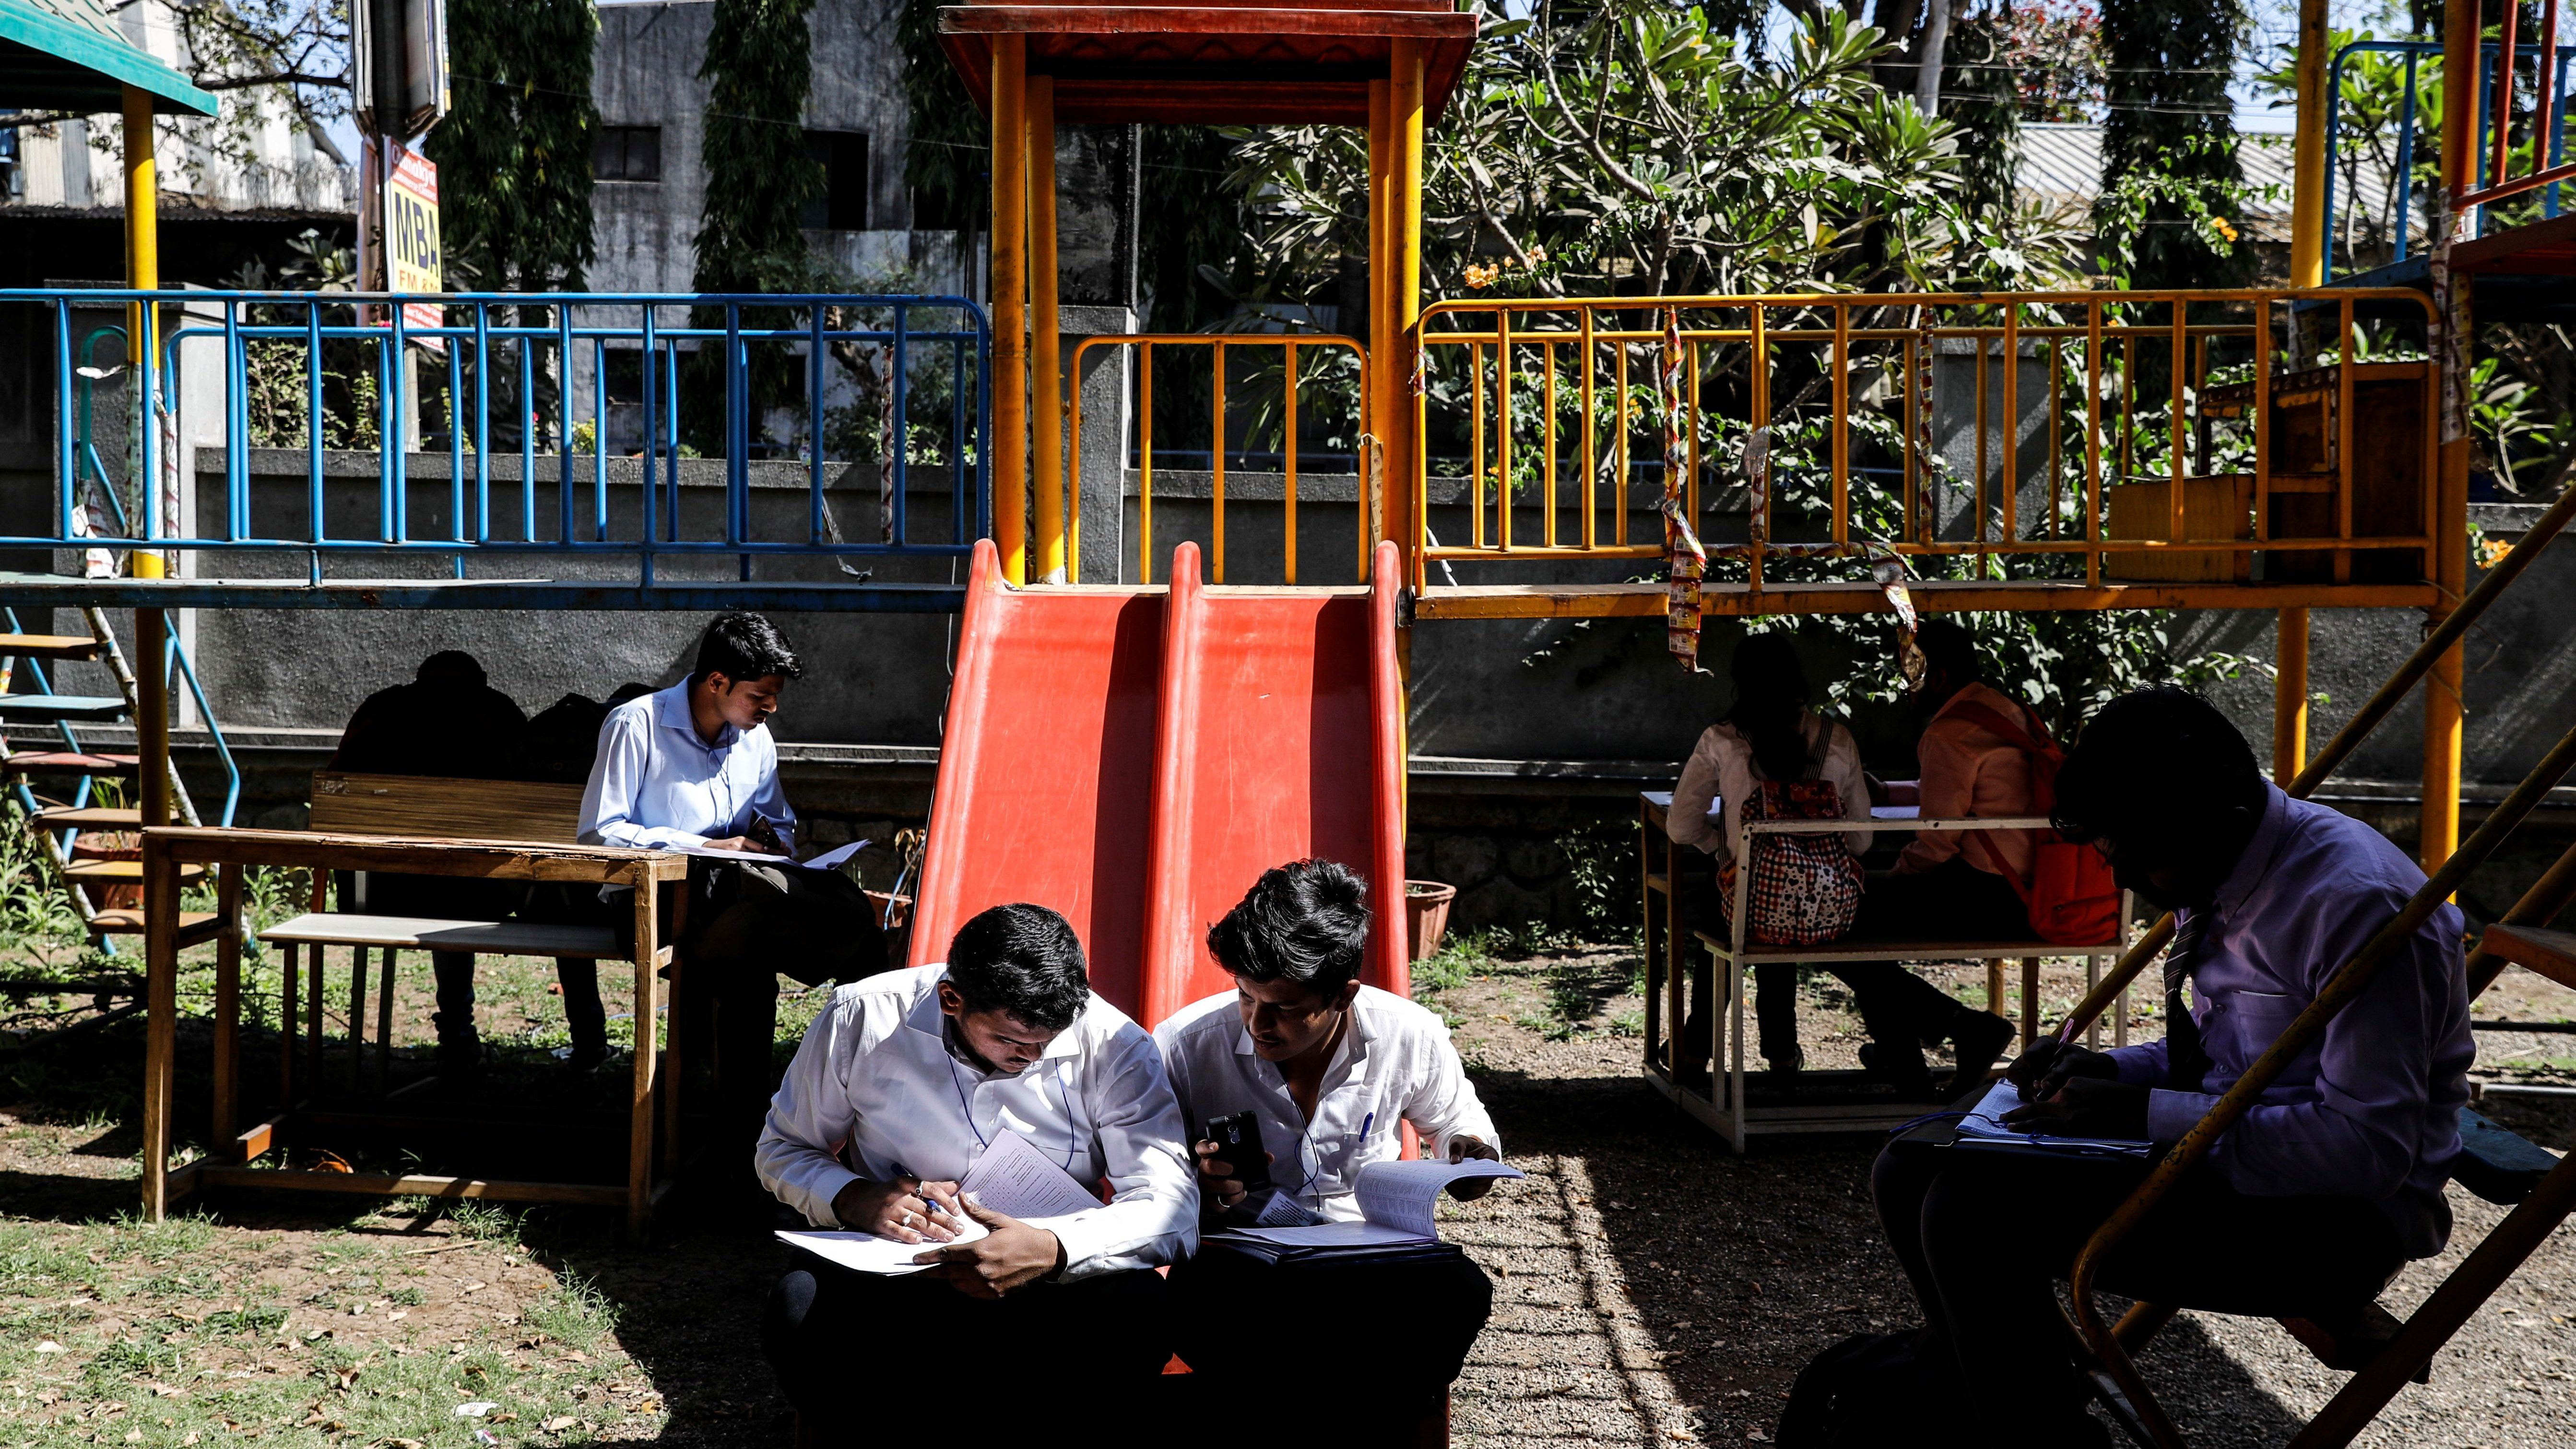 Job seekers fill up their forms while sitting on swings before lining up for interviews at a job fair in Chinchwad